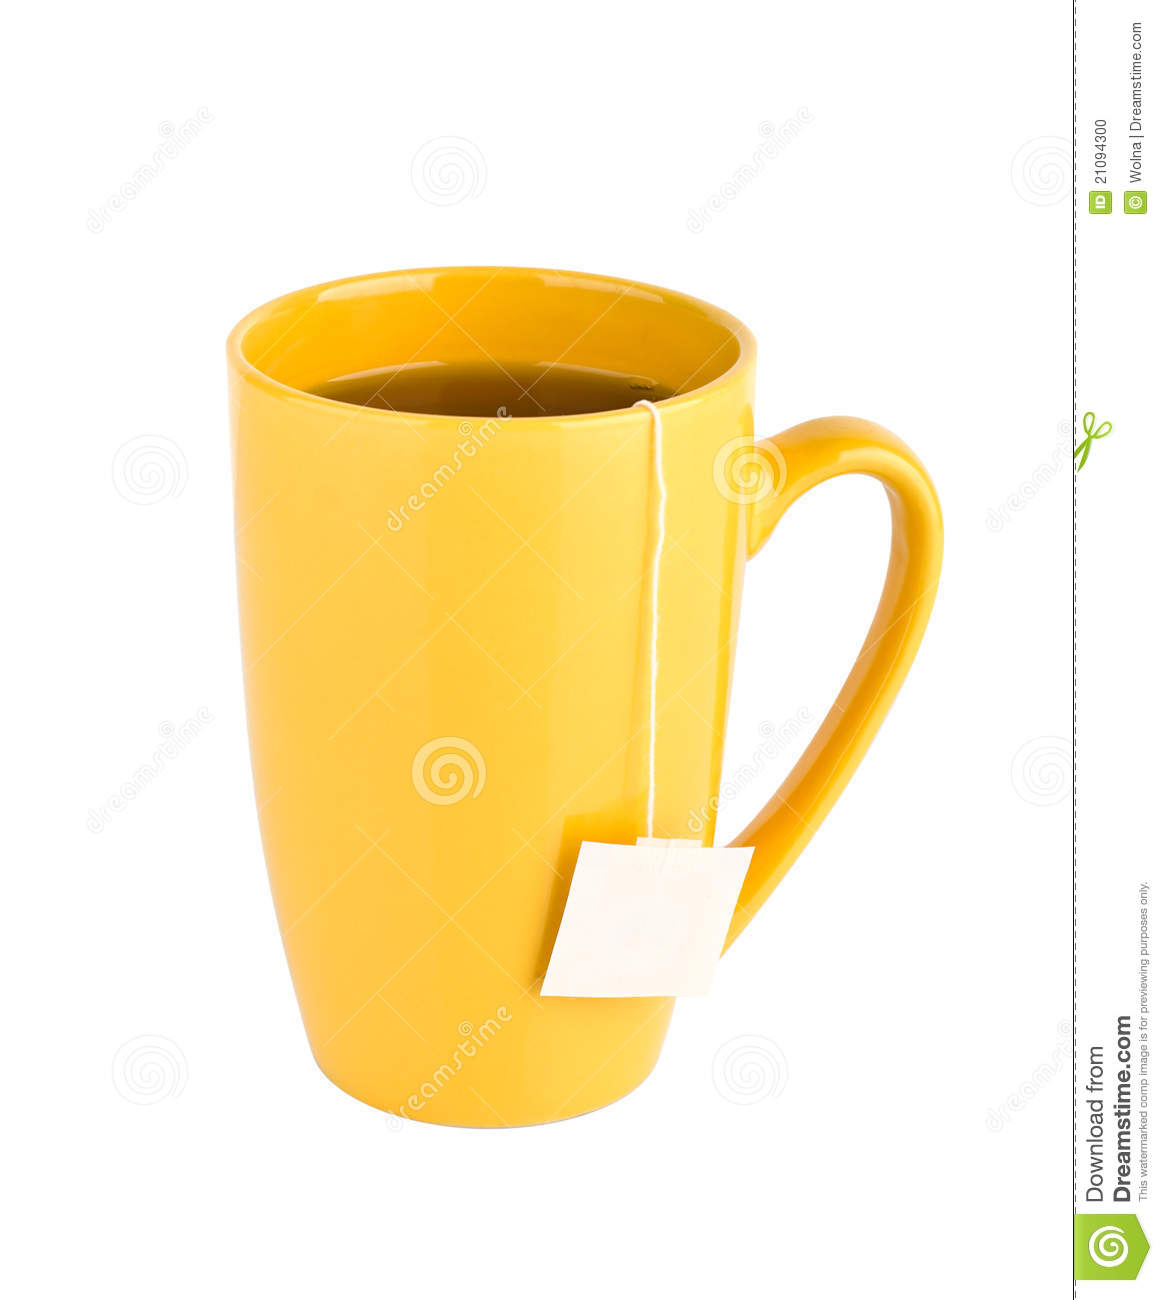 yellow mug of tea isolated on white background stock photo image 21094300. Black Bedroom Furniture Sets. Home Design Ideas